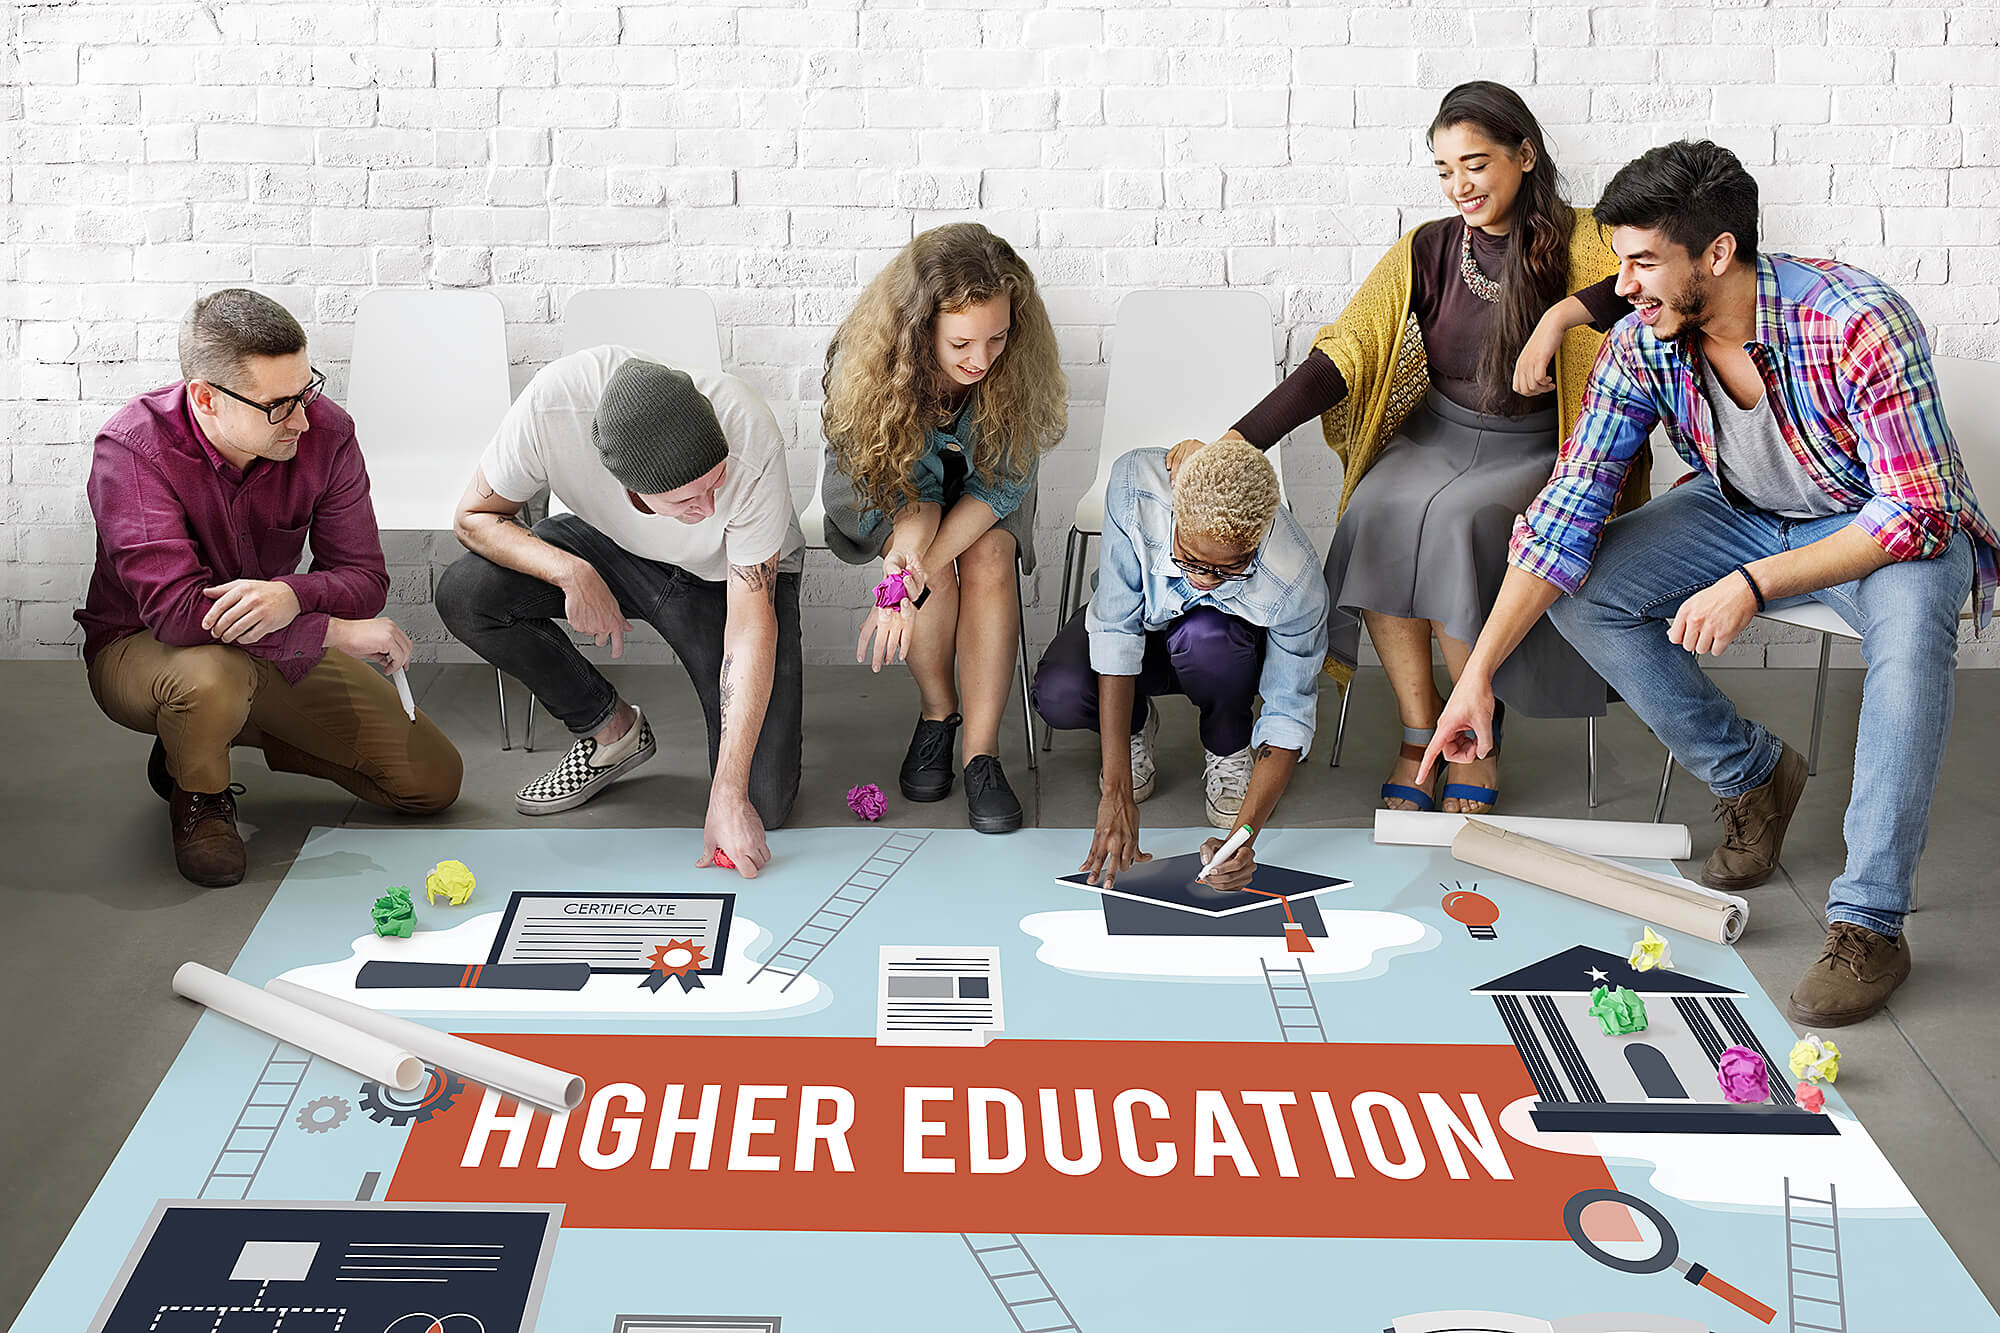 Photo of a group of students looking at a plan for higher education.